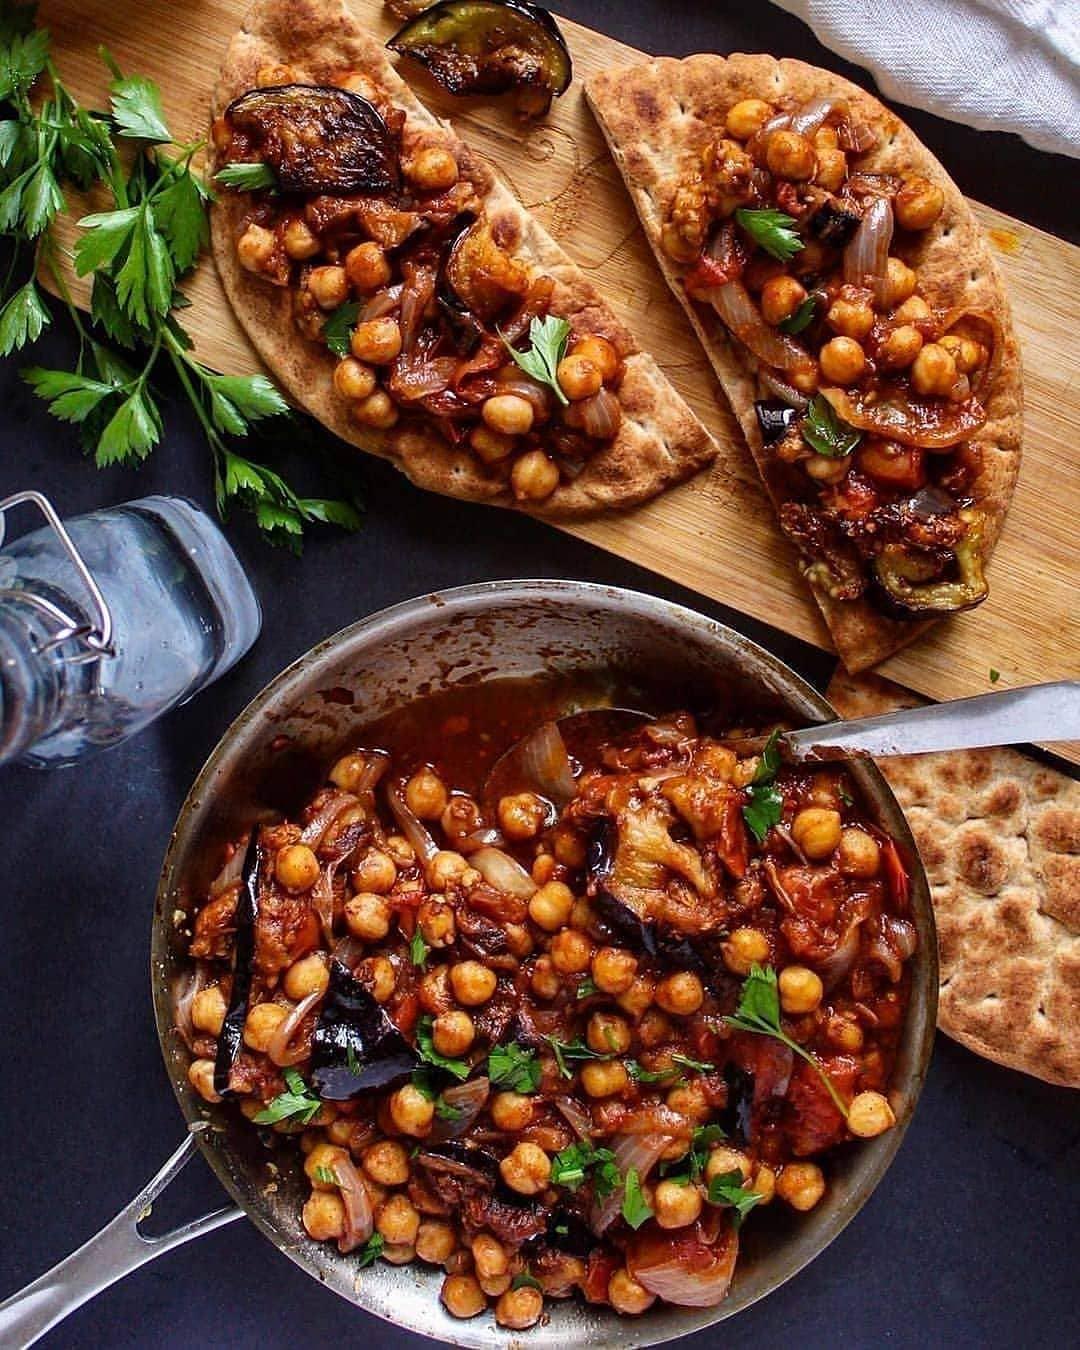 maghmour is a simple lebanese stew with grilled eggplant fr display image  0a238933